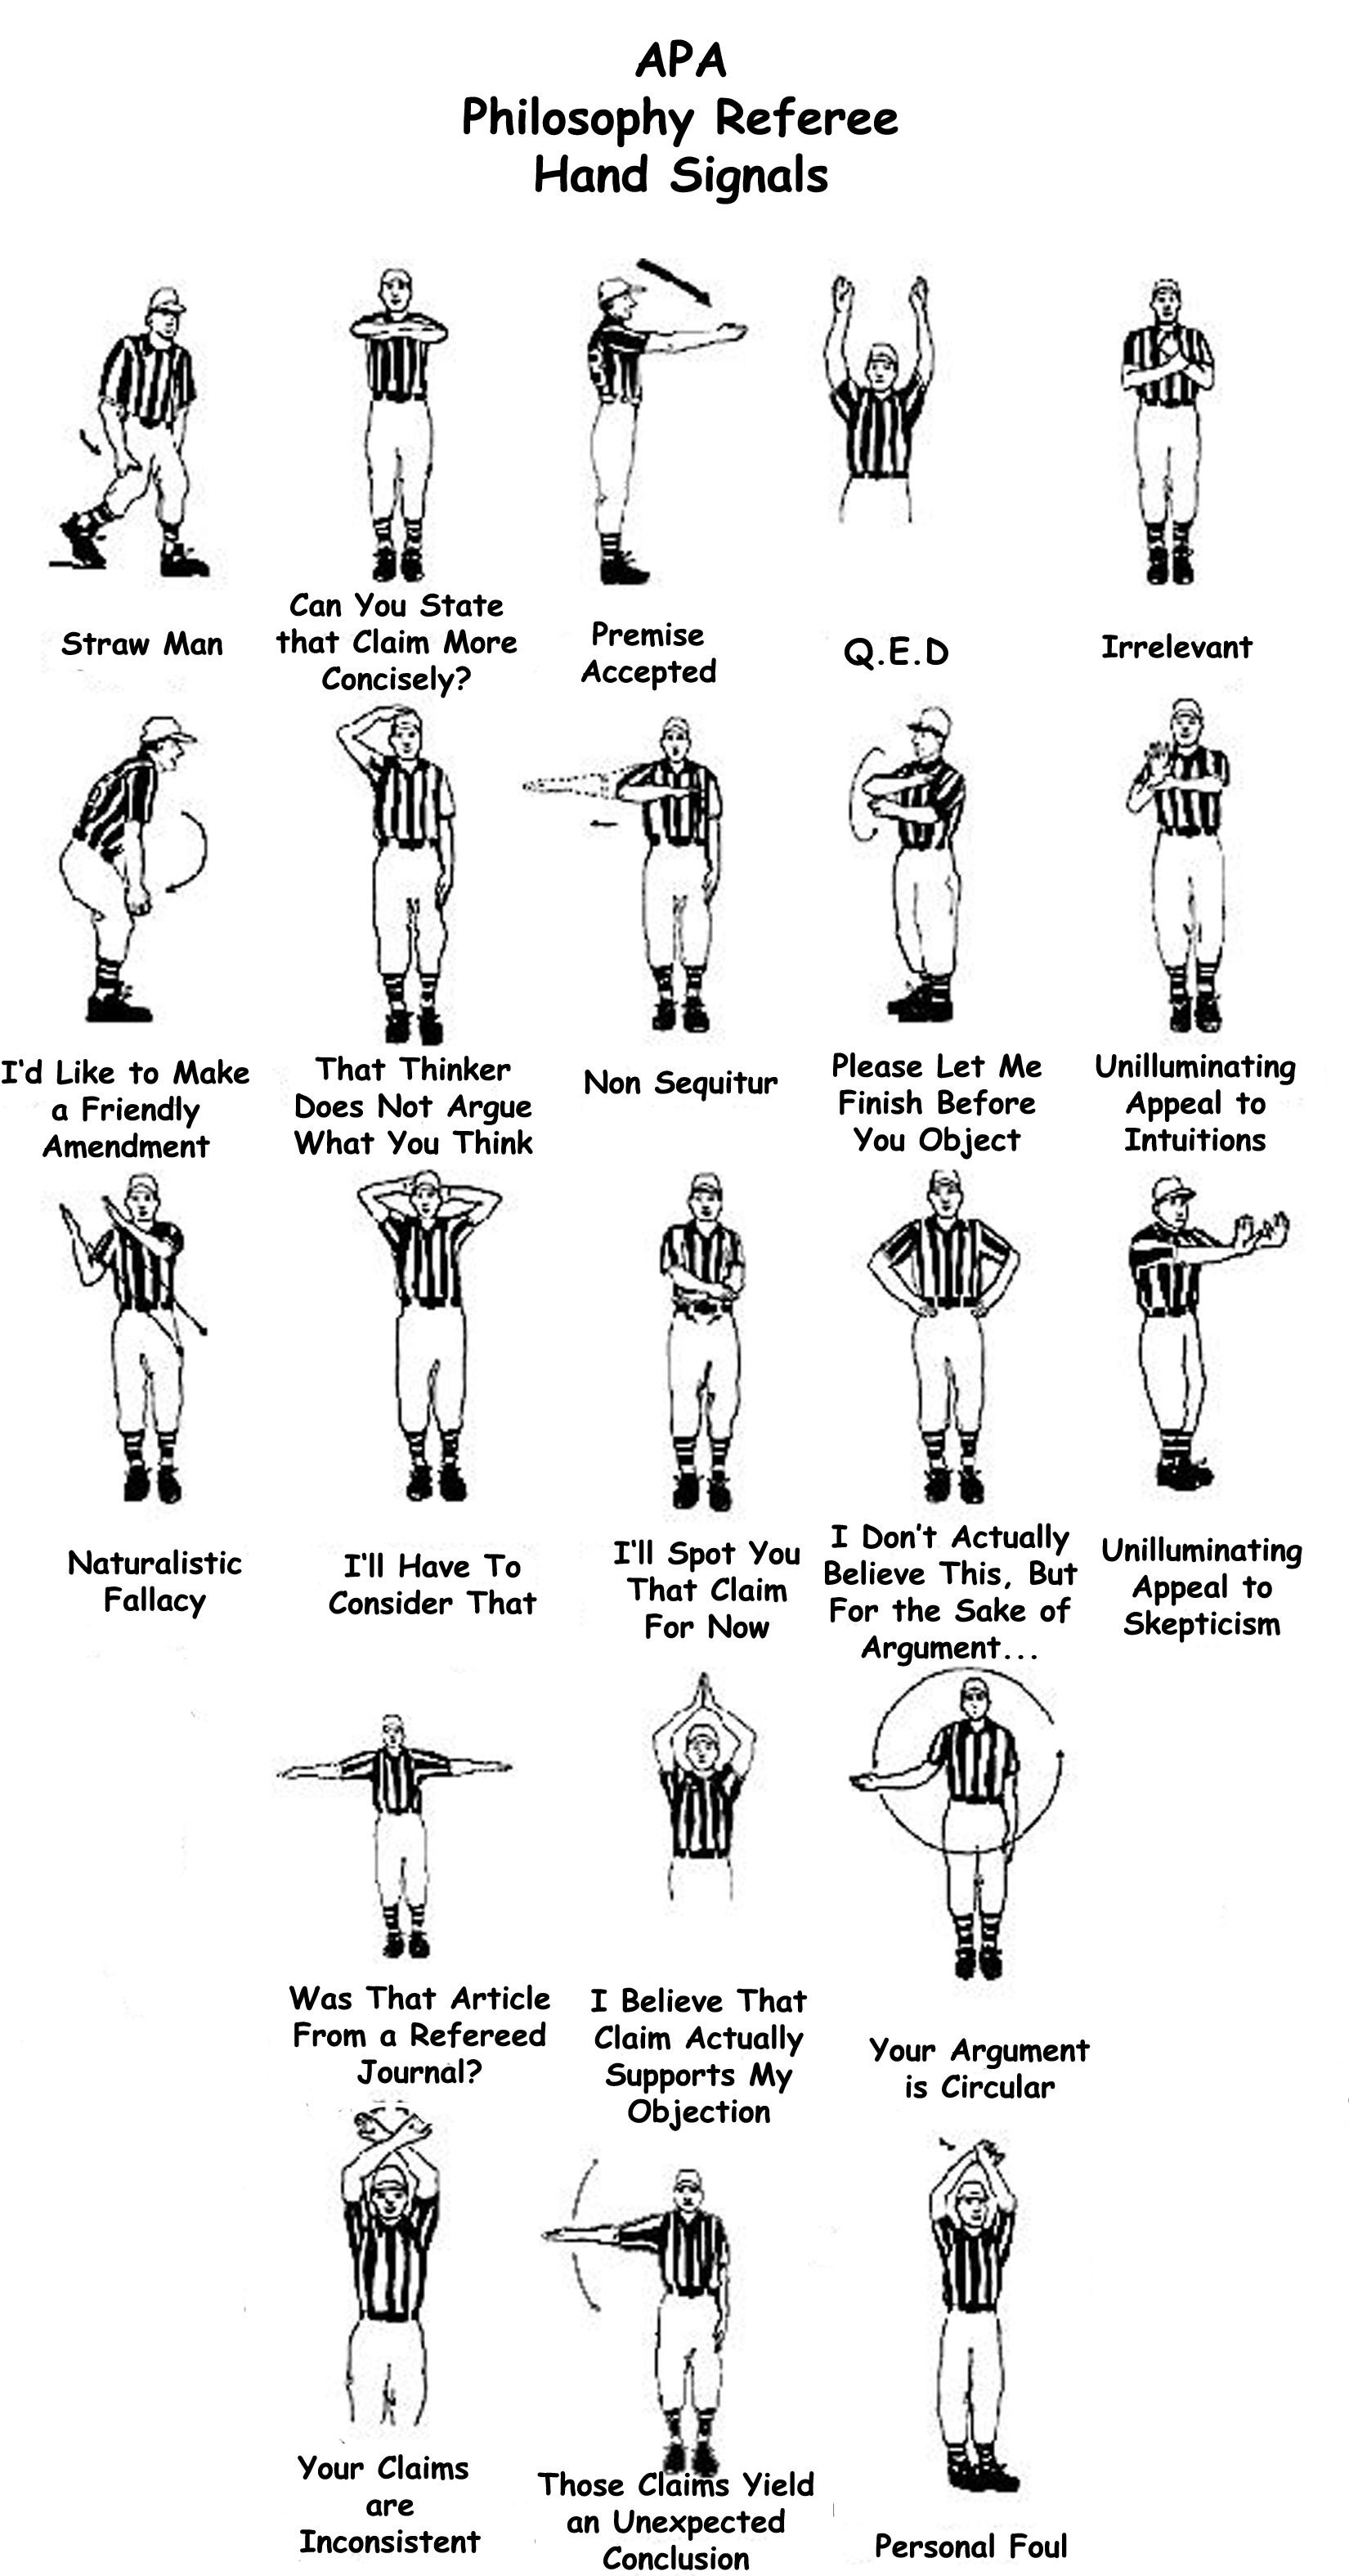 404 Not Found Philosophy Hand Signals Referee